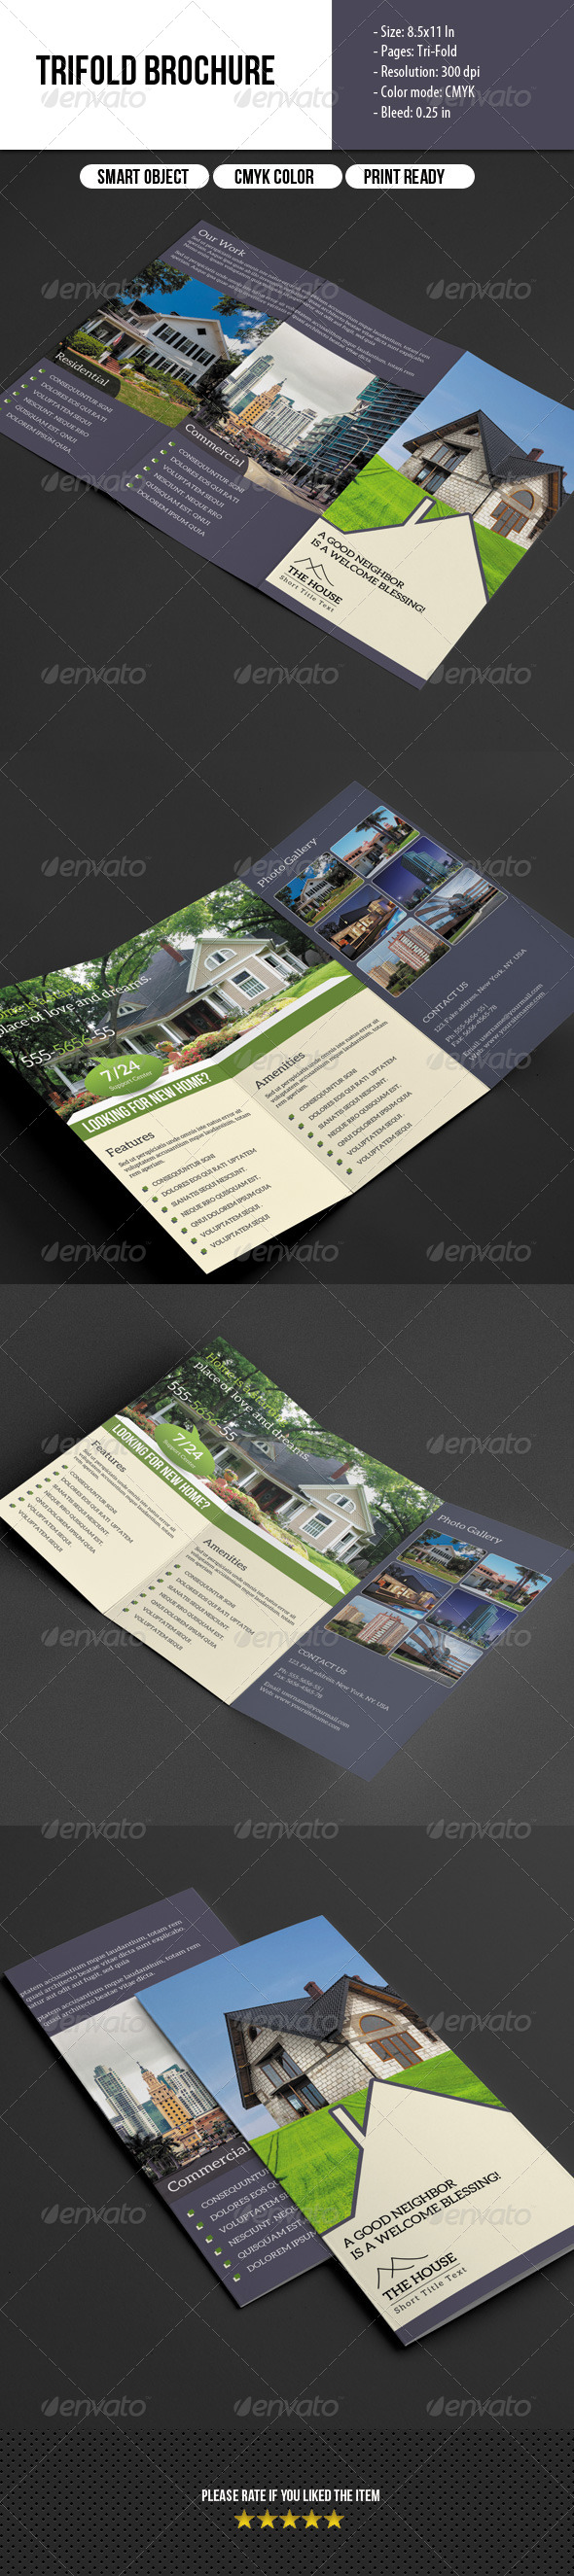 GraphicRiver Trifold Brochure- Real Estate 7018822